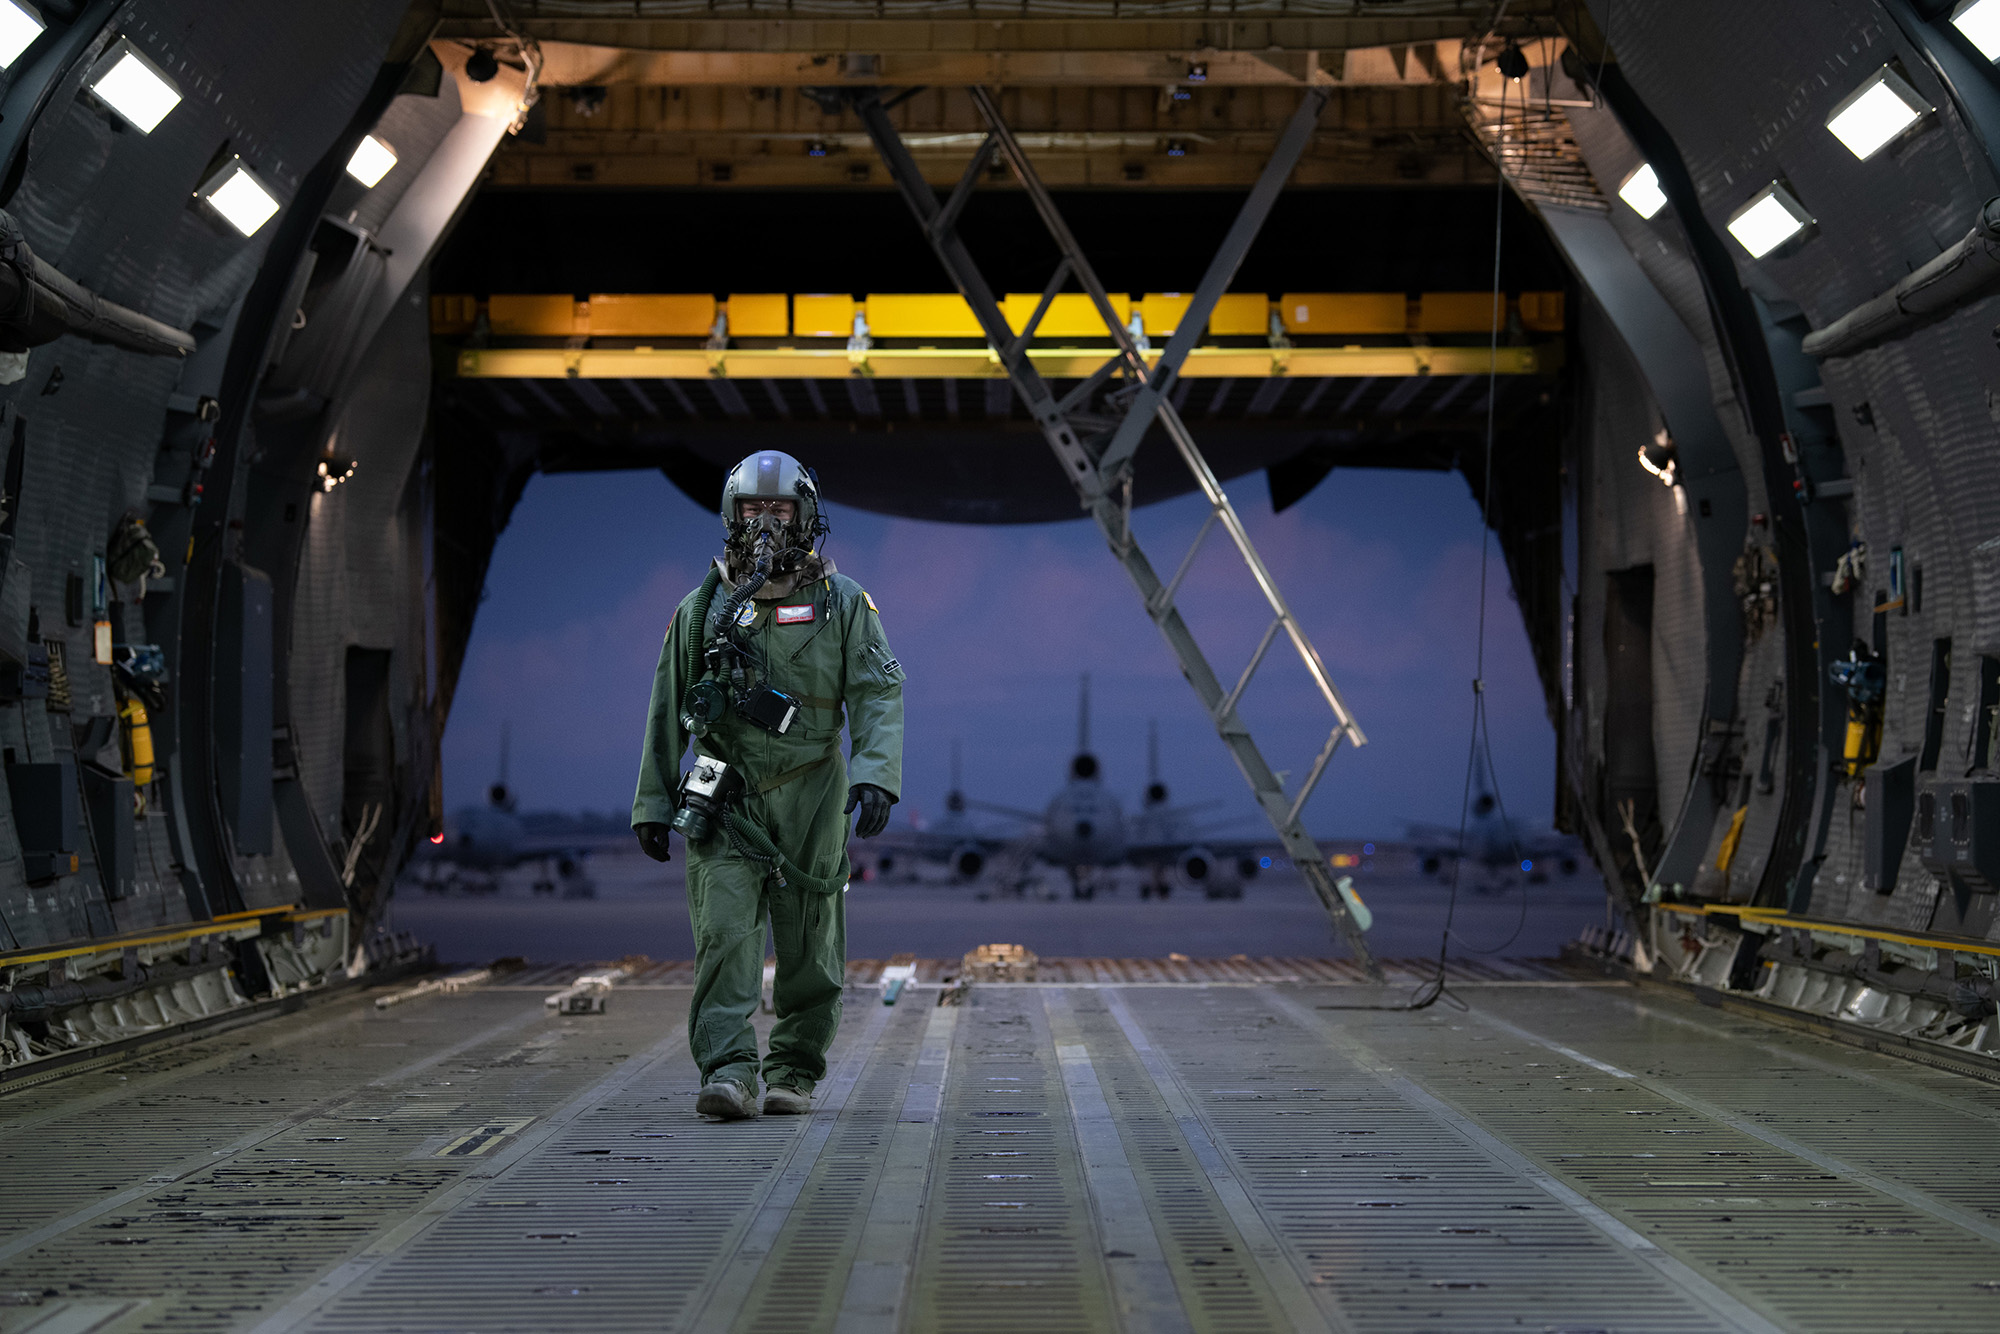 Staff Sgt. Cameron DiMatteo, 22nd Airlift Squadron loadmaster, walks inside a C-5M Super Galaxy during a base exercise Nov. 18, 2020, at Travis Air Force Base, Calif. (Chustine Minoda/Air Force)